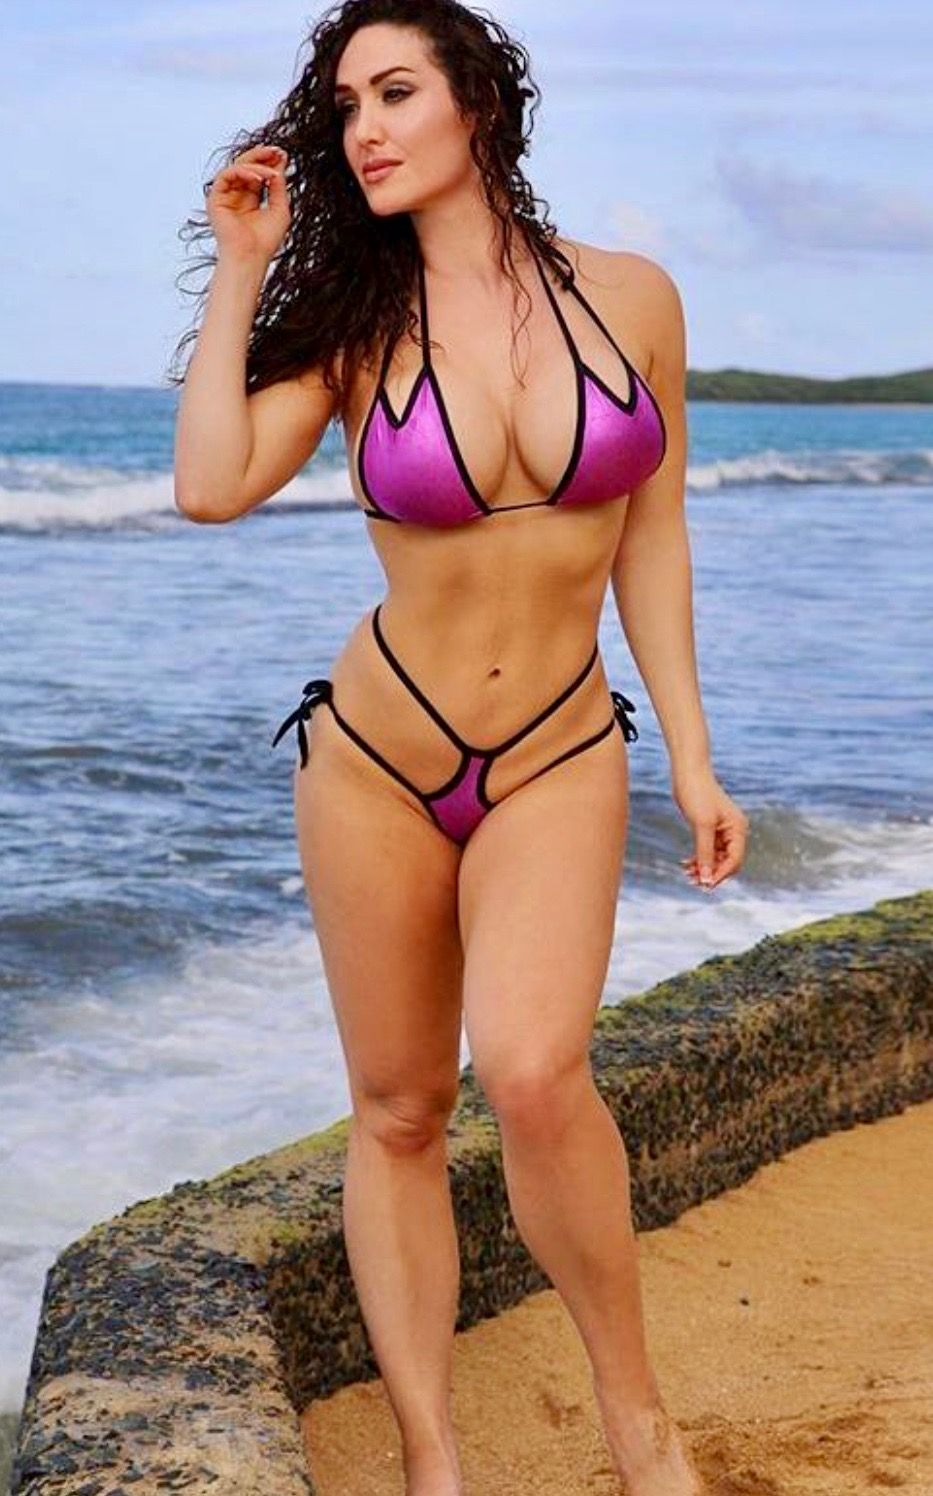 31 The Most Sexy Bandage Swimsuit Ideas To Try This Summer 31 The Most Sexy Bandage Swimsuit Ideas To Try This Summer new pics